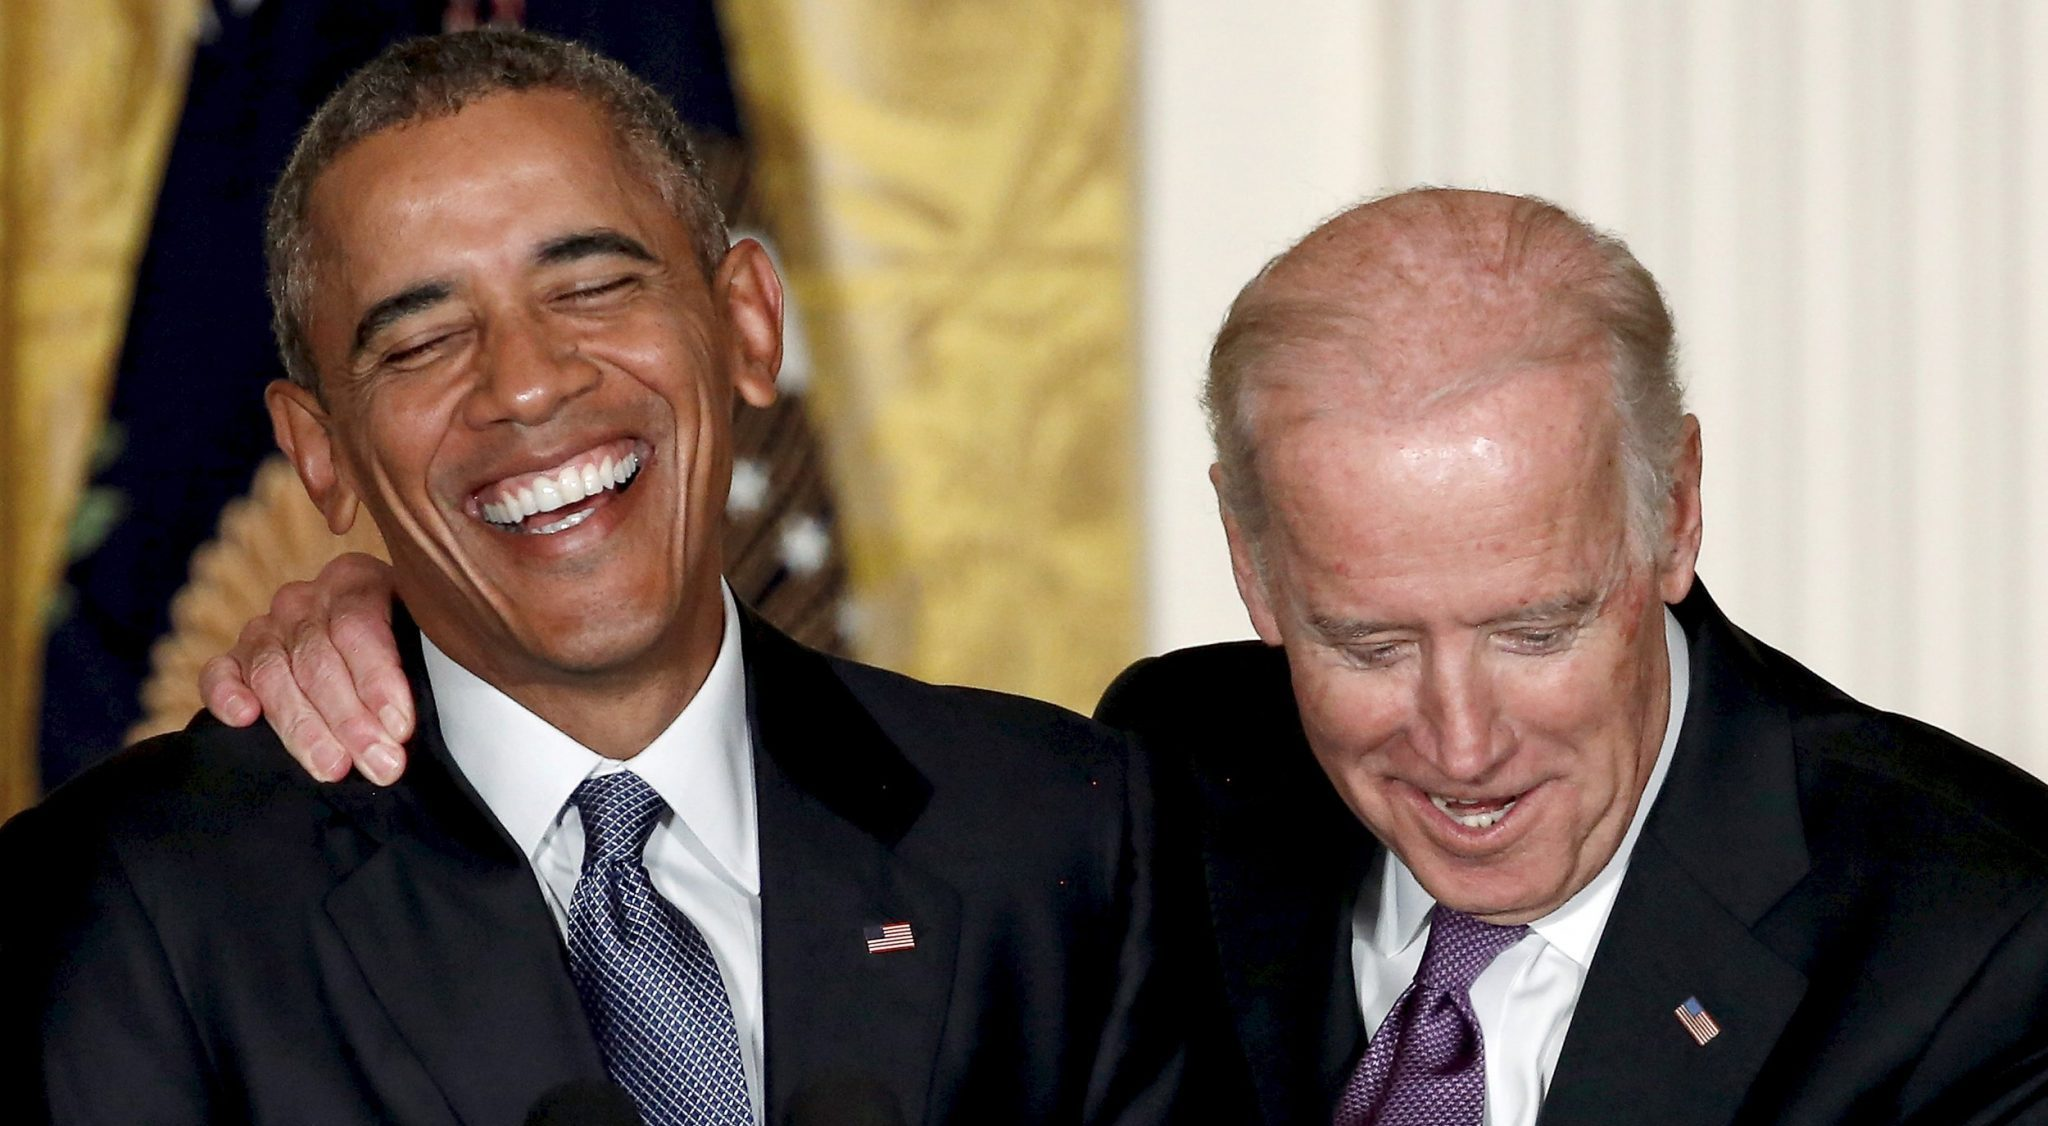 It's the Biden People You Don't See Who Ought to Worry You